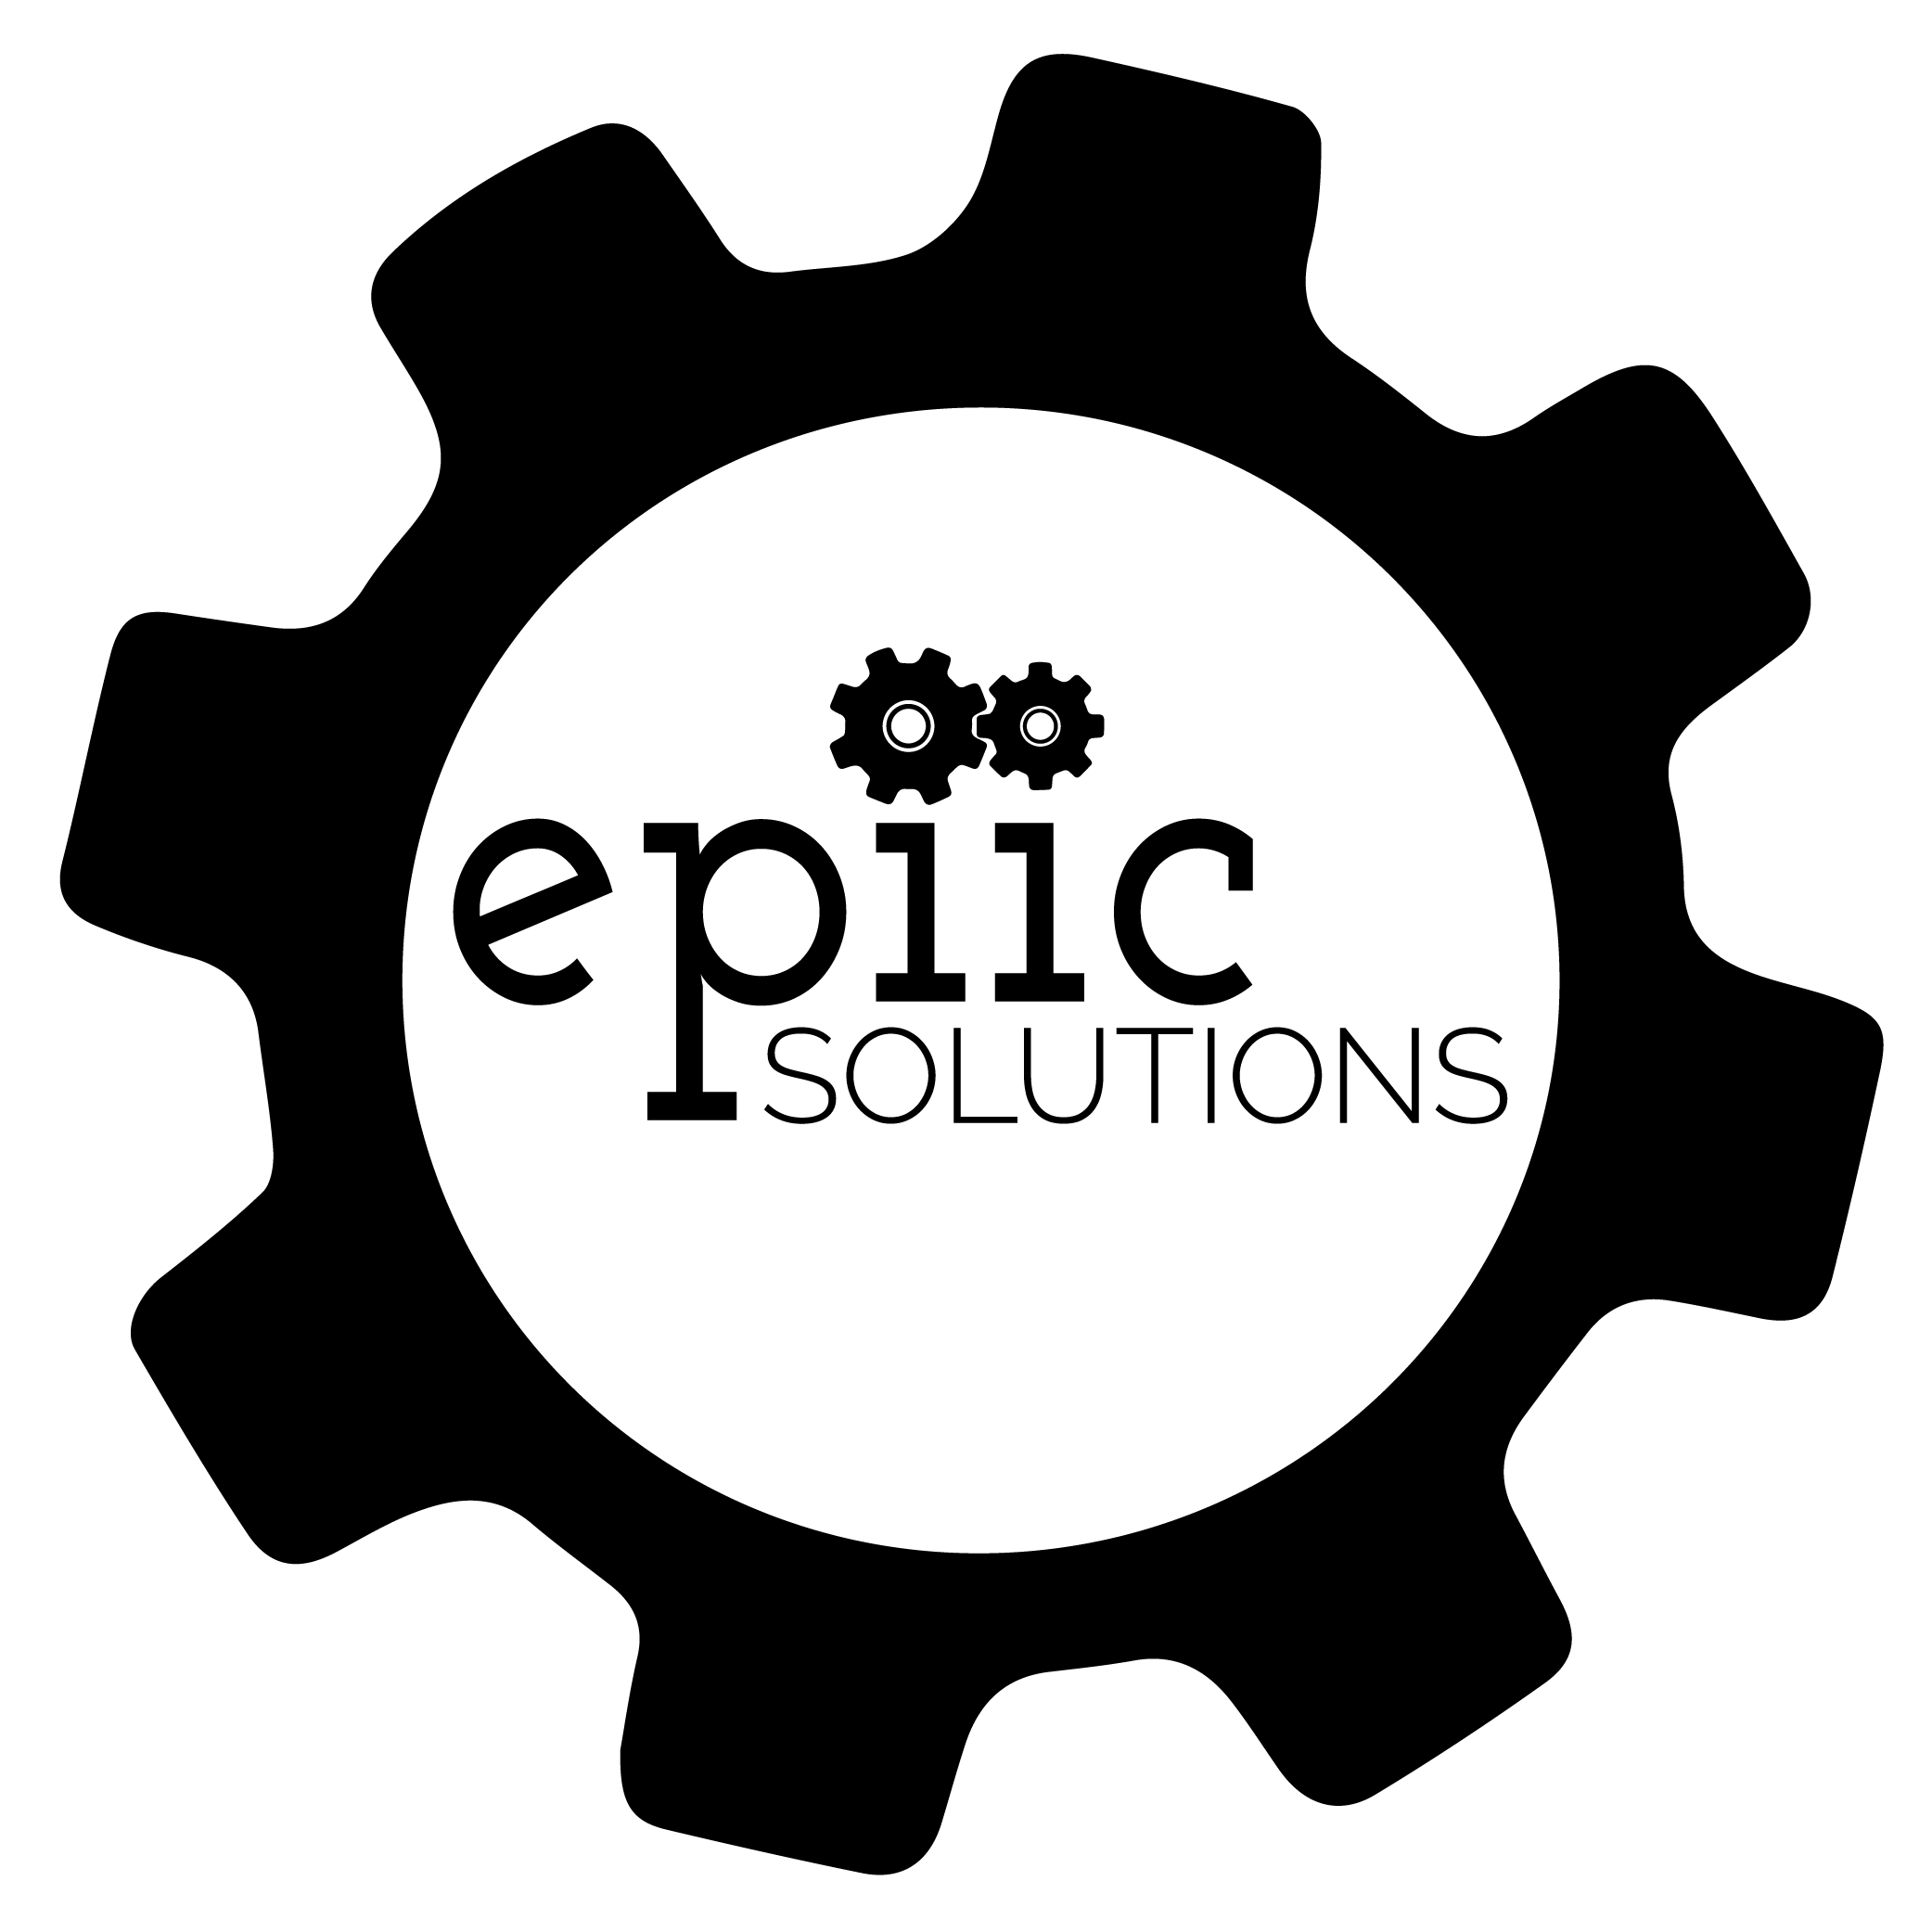 Copy of Epiic Solutions